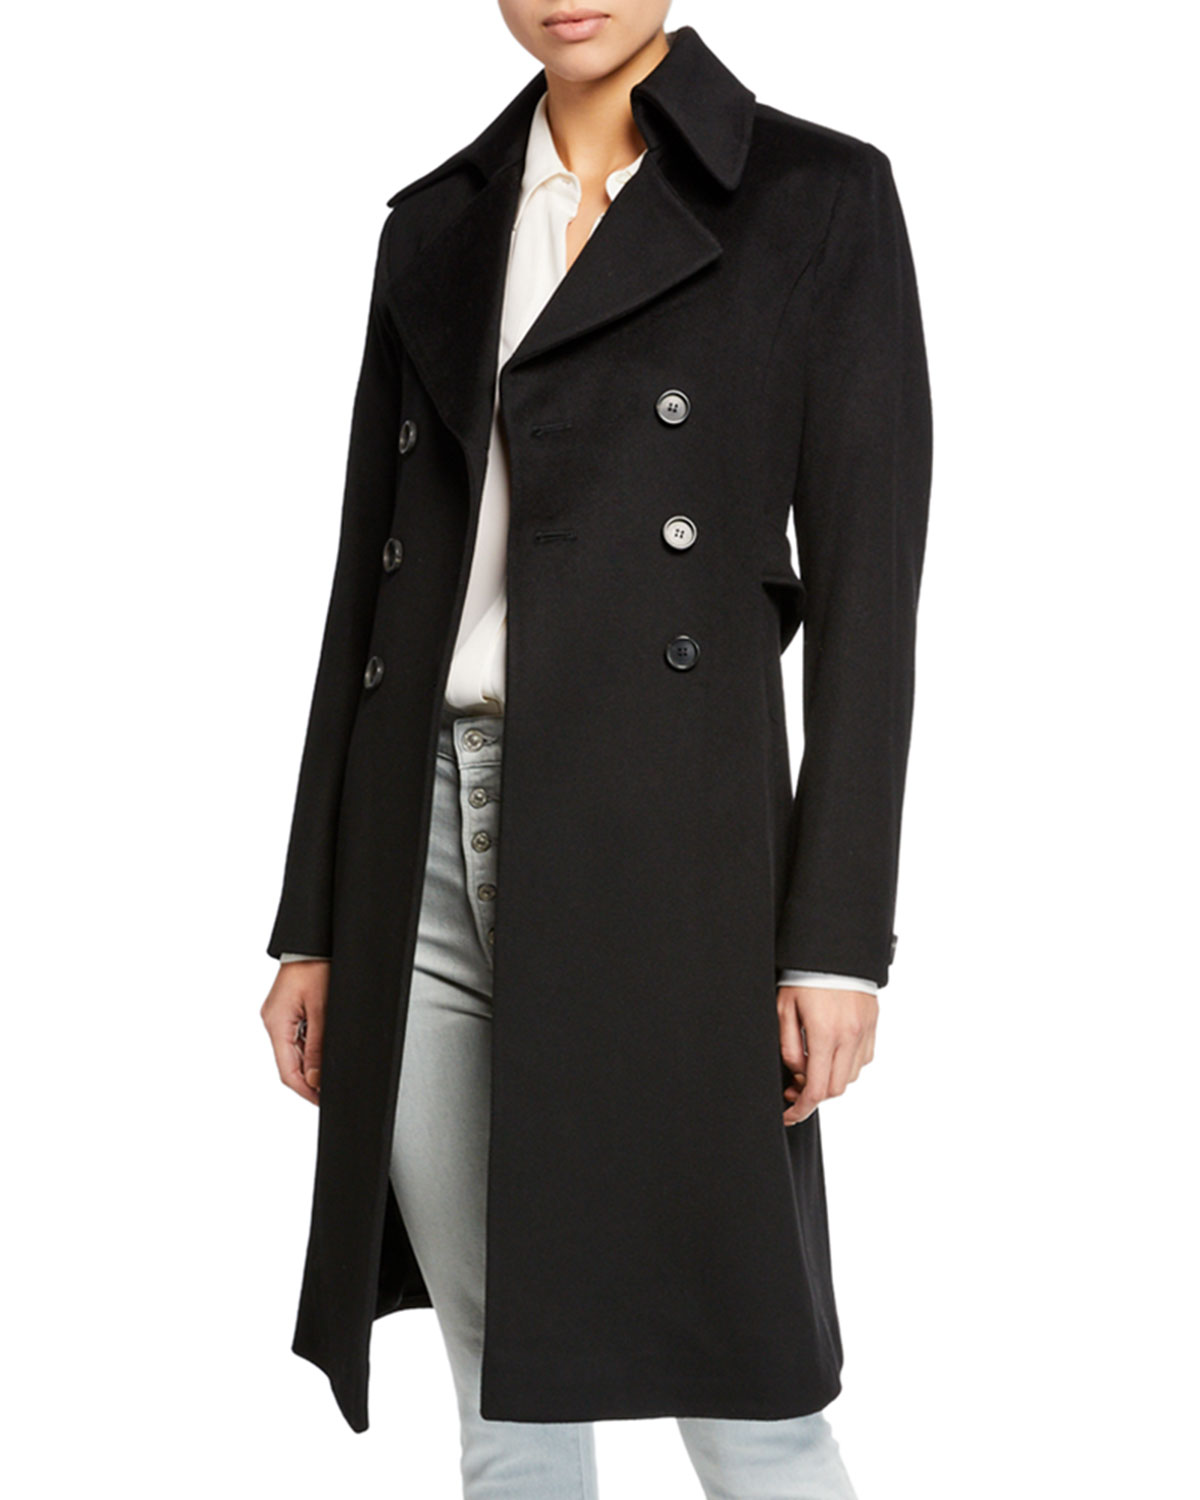 FLEURETTE Double-Breasted Back-Belt Wool Coat in Black